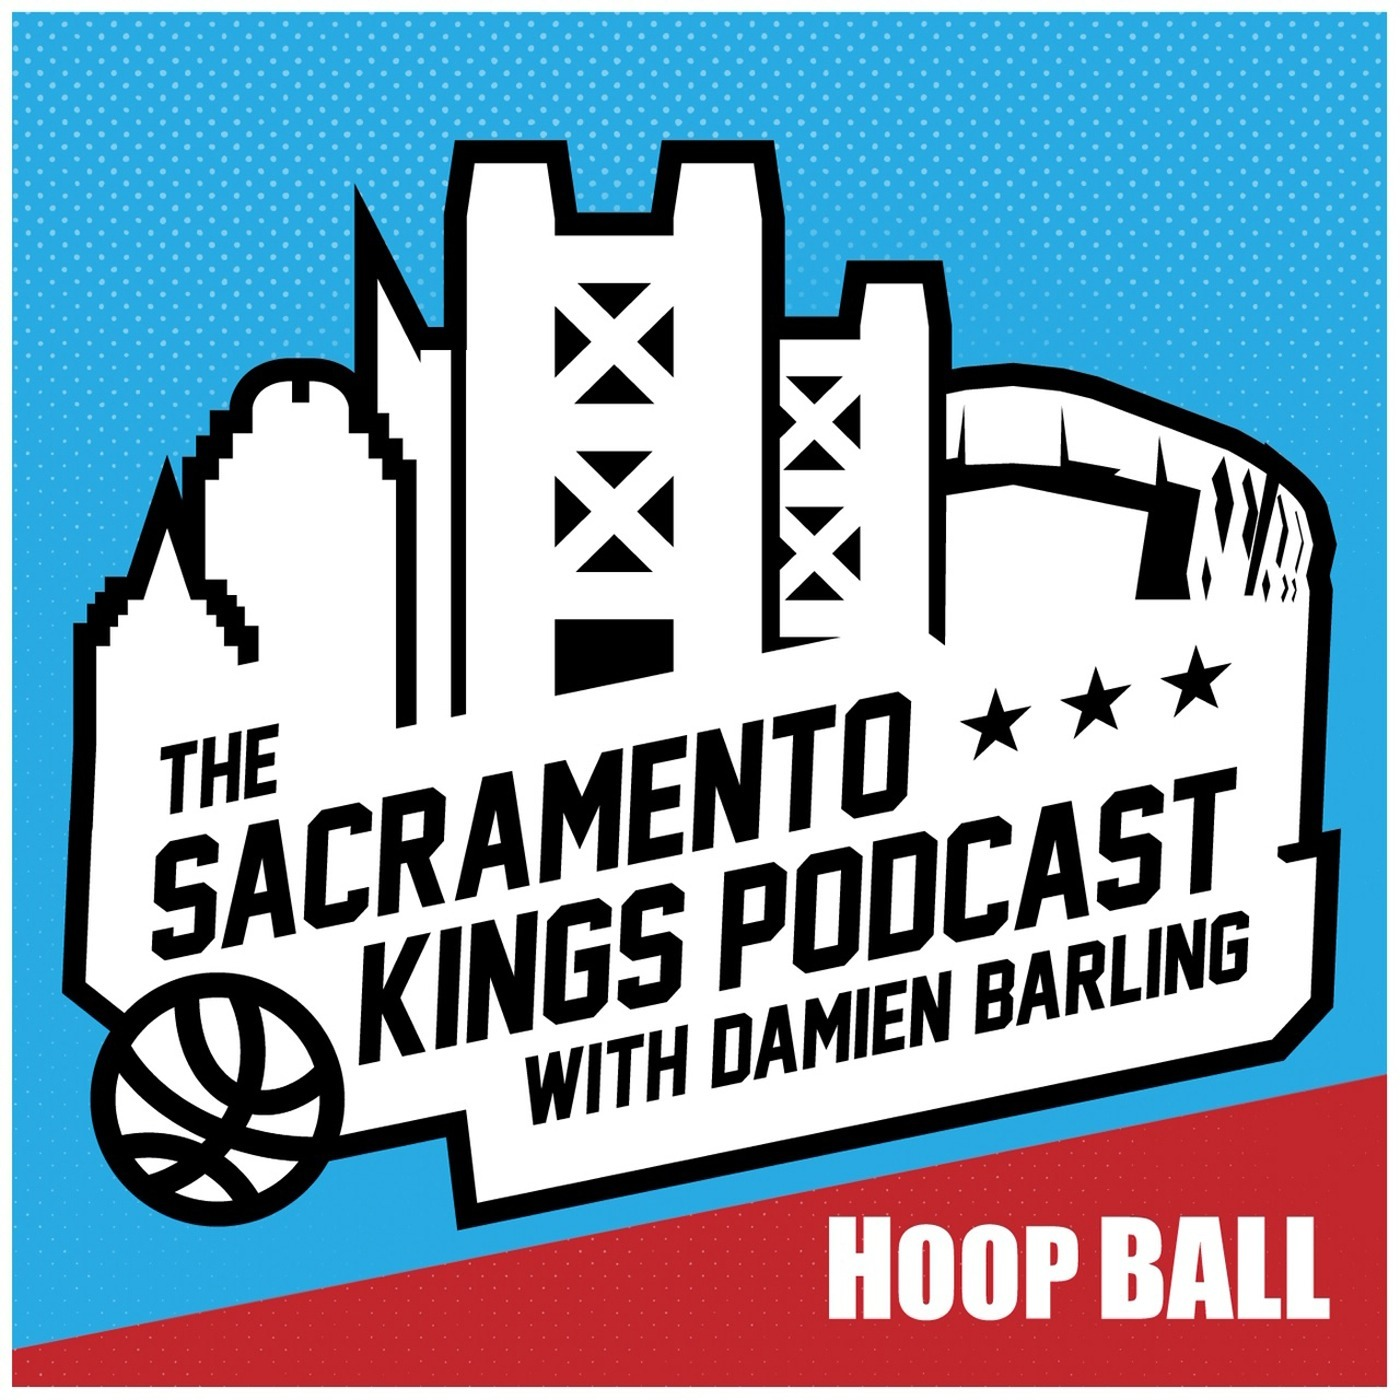 The Hoop Ball Sacramento Kings Podcast | RedCircle